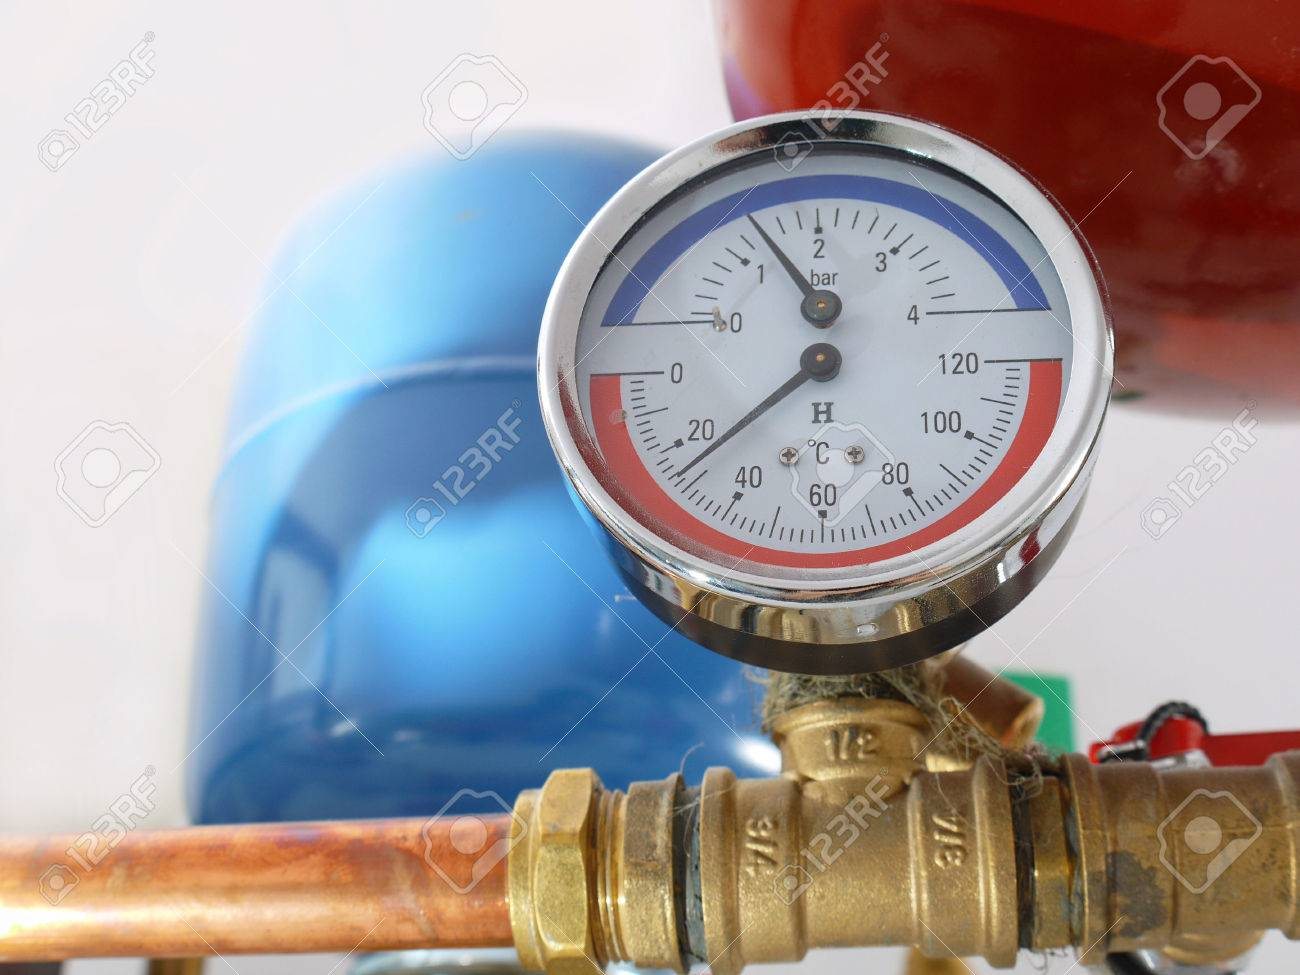 Temperature And Pressure Gauge Mounted On Boiler Pipes Stock Photo ...